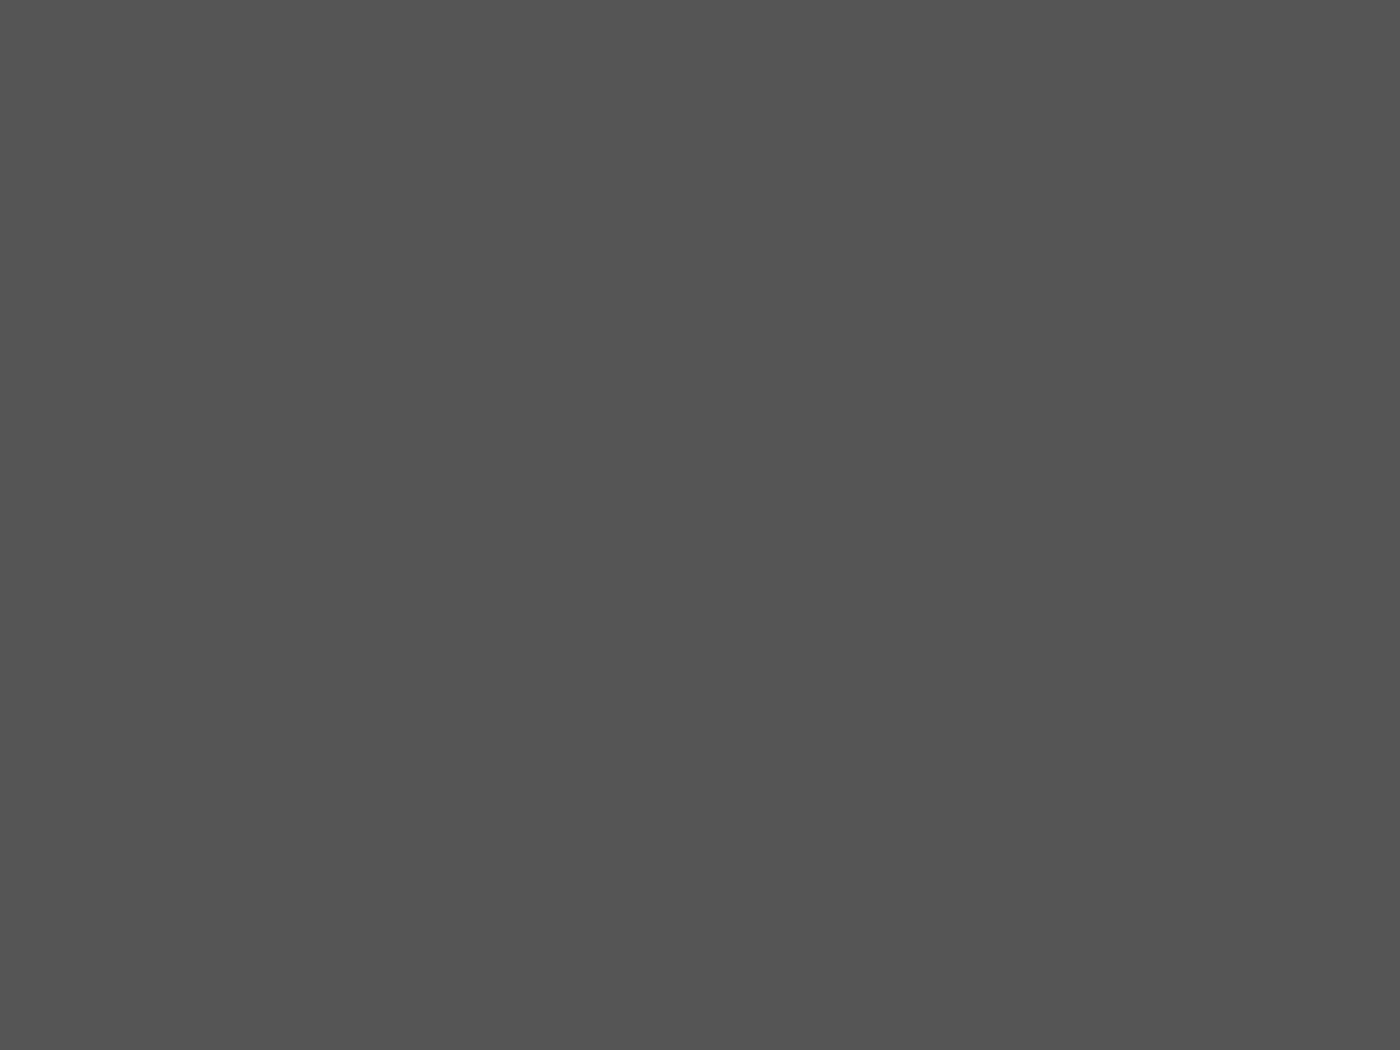 1400x1050 Davys Grey Solid Color Background